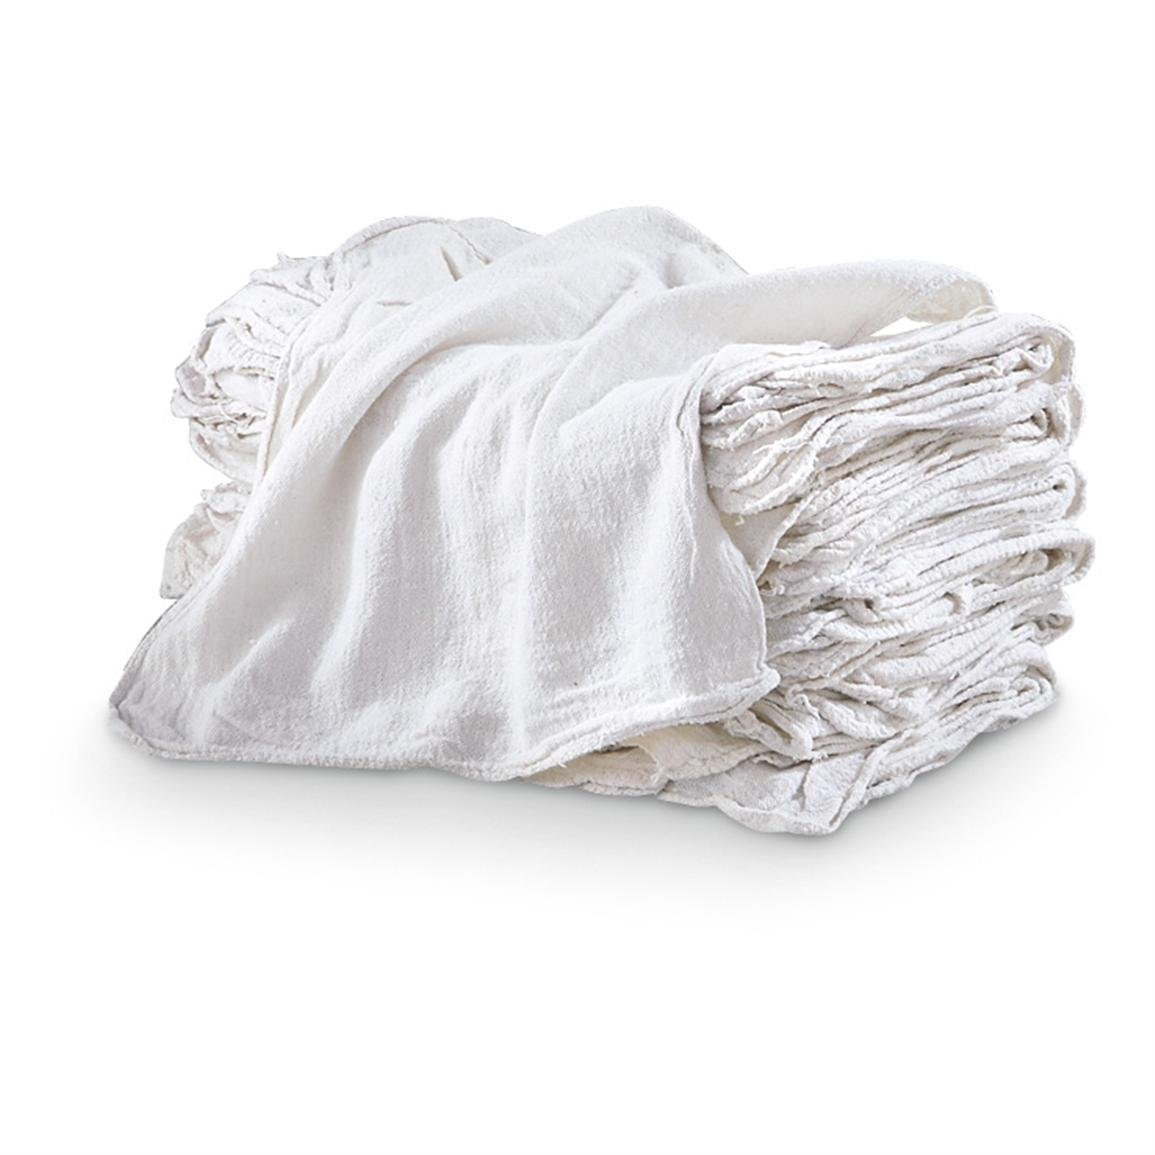 MHF Brand Shop Towels-PREMIUM A GRADE-14x14 Inch-NEW 100% Cotton (100, White)